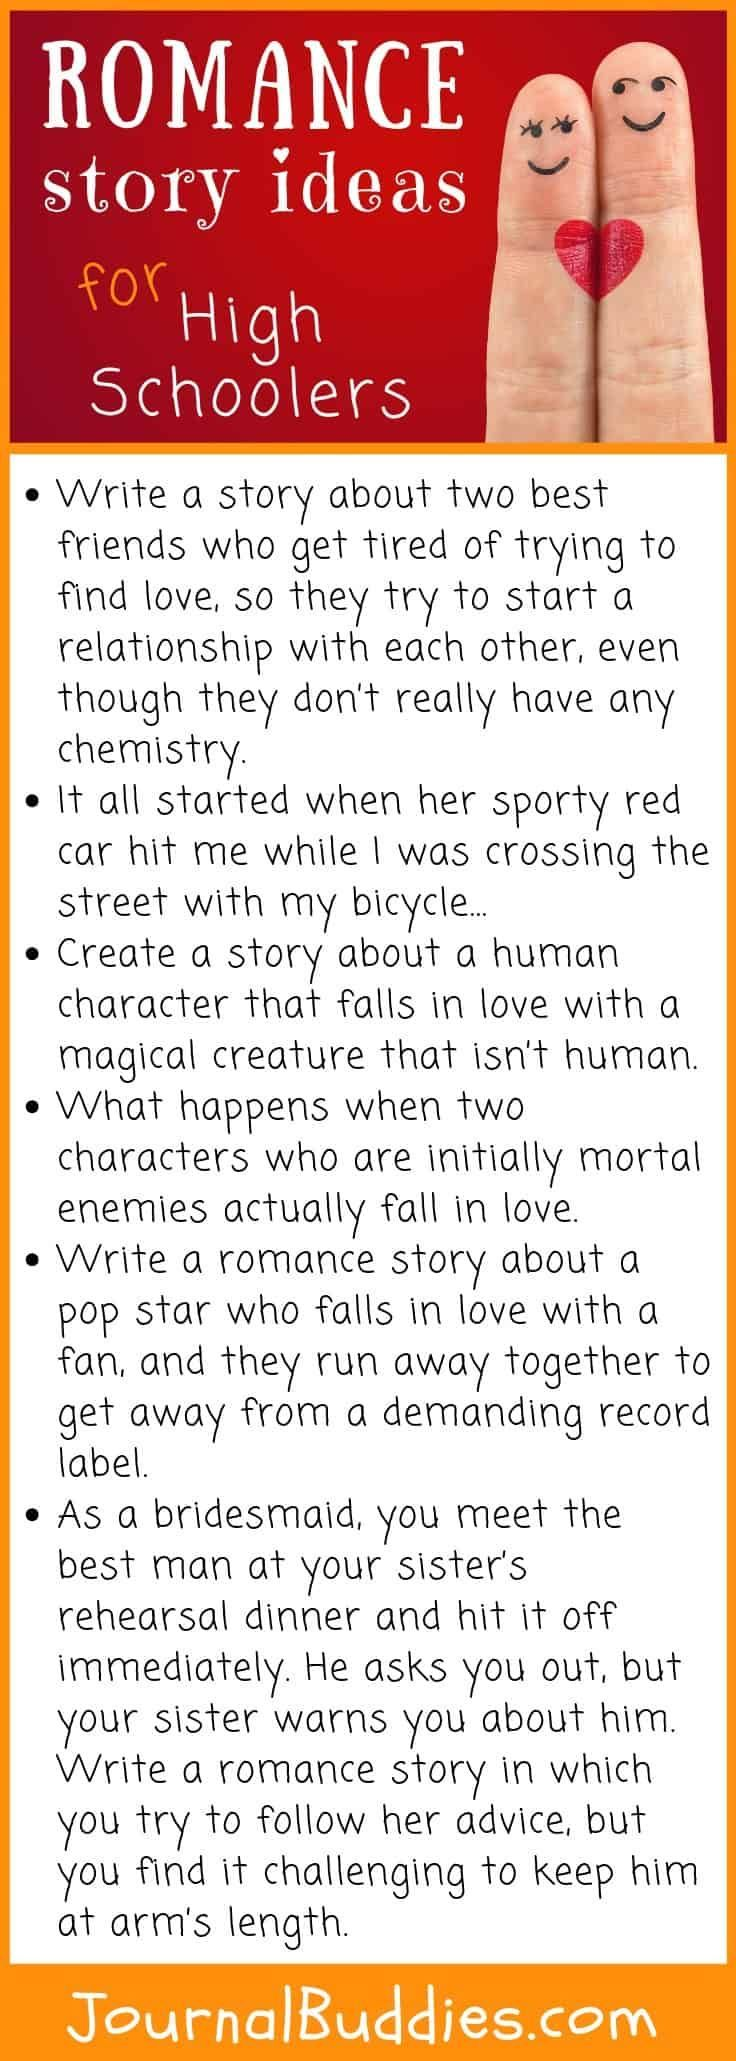 Romance Story Ideas For High Schoolers Writing Prompts Romance Creative Writing Prompts Story Writing Prompts